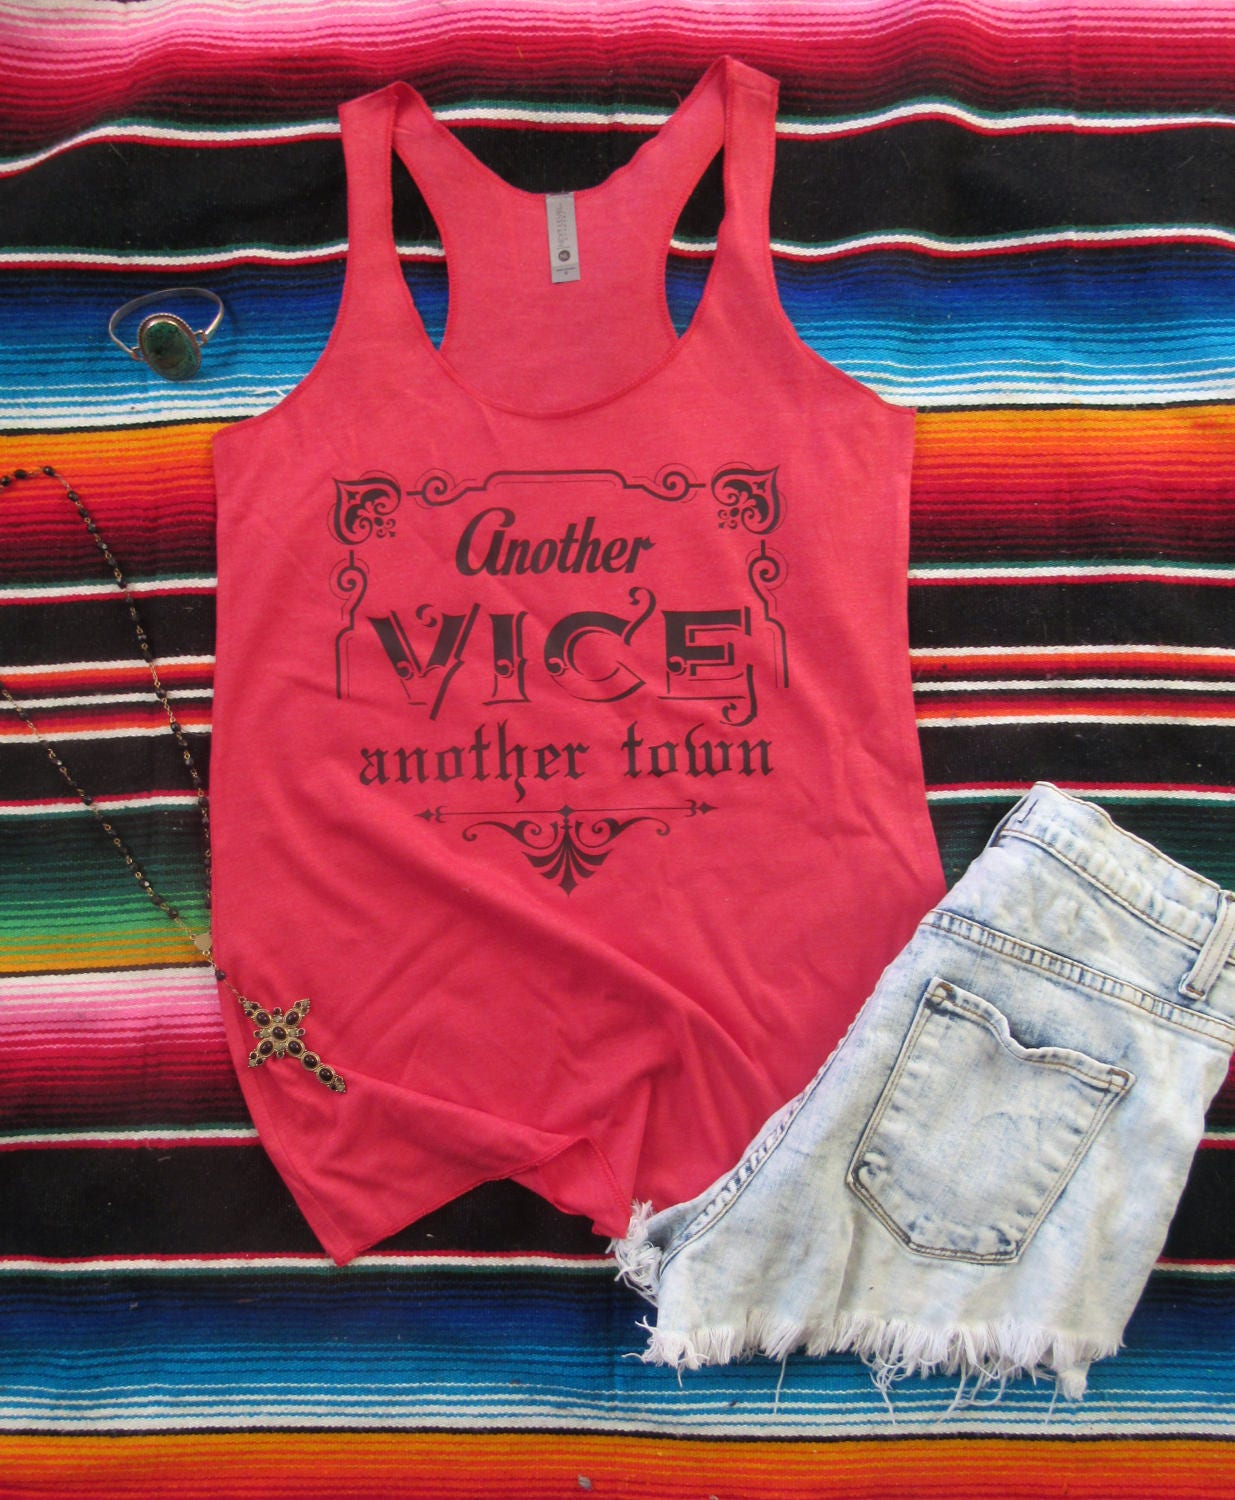 adf322194dae6d Another Vice another town Country Tank Top  Miranda Lambert